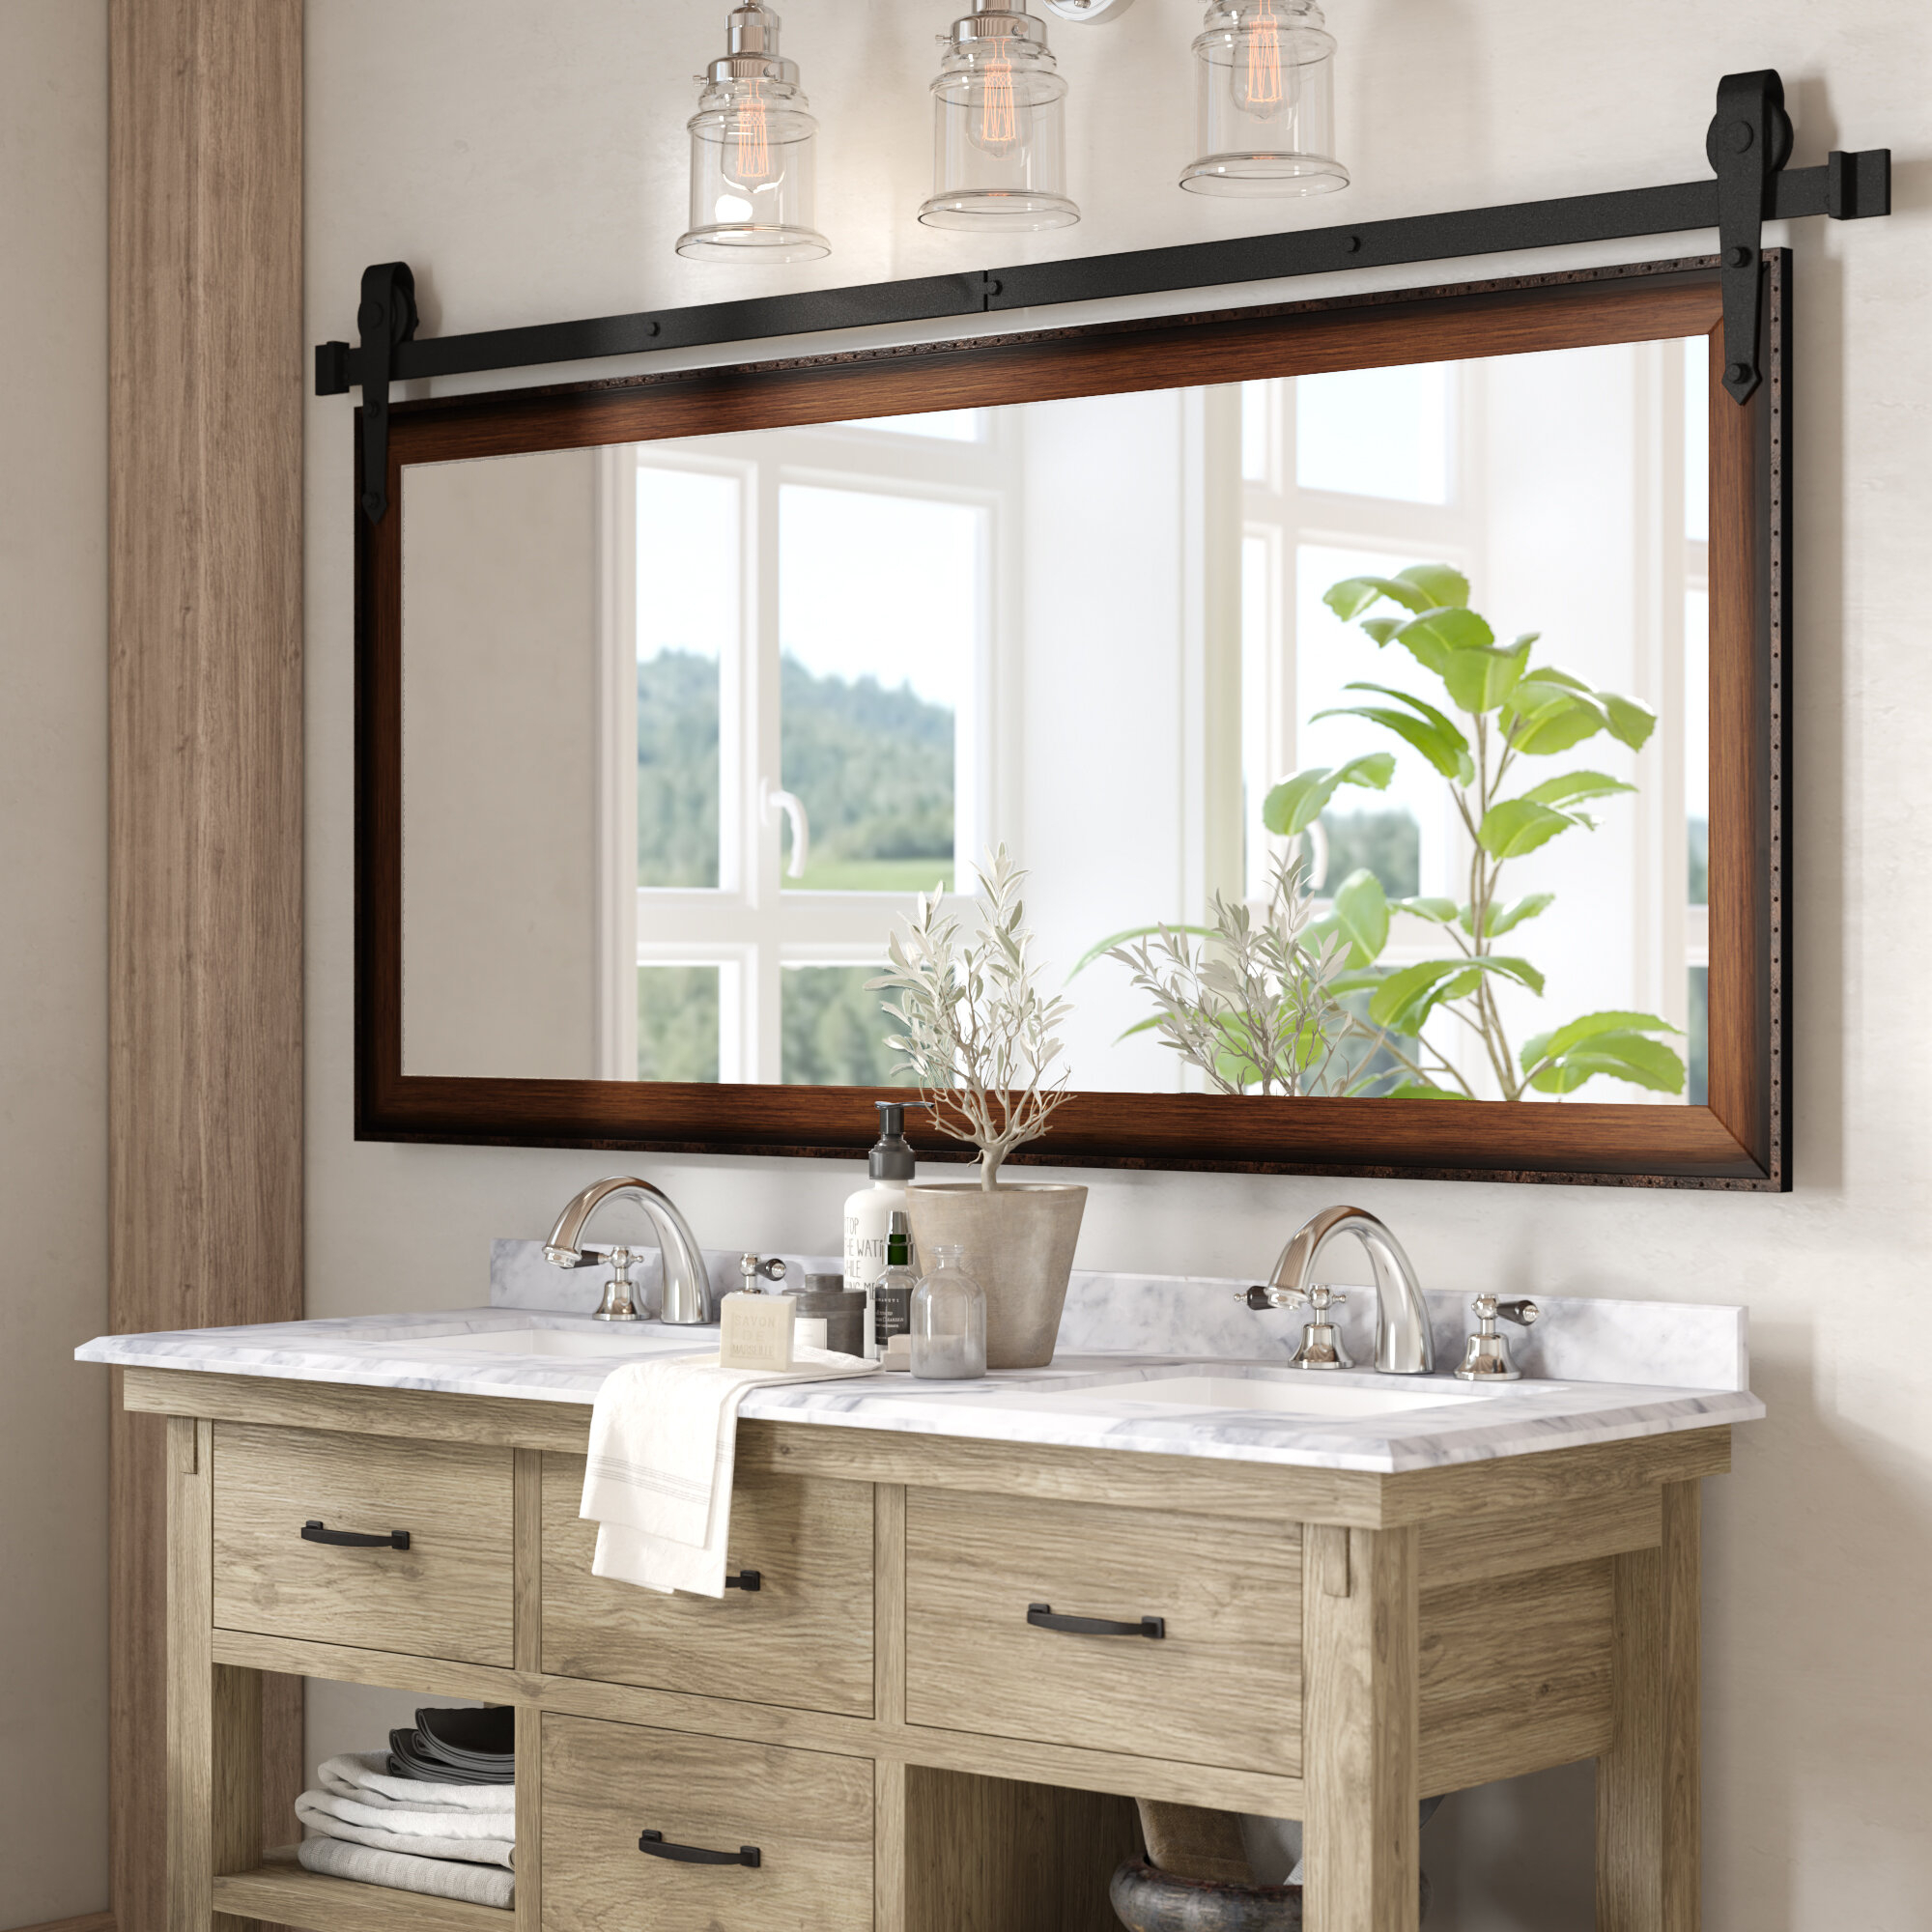 Find The Perfect Vanity Mirrors | Wayfair For Landover Rustic Distressed Bathroom/vanity Mirrors (View 13 of 30)